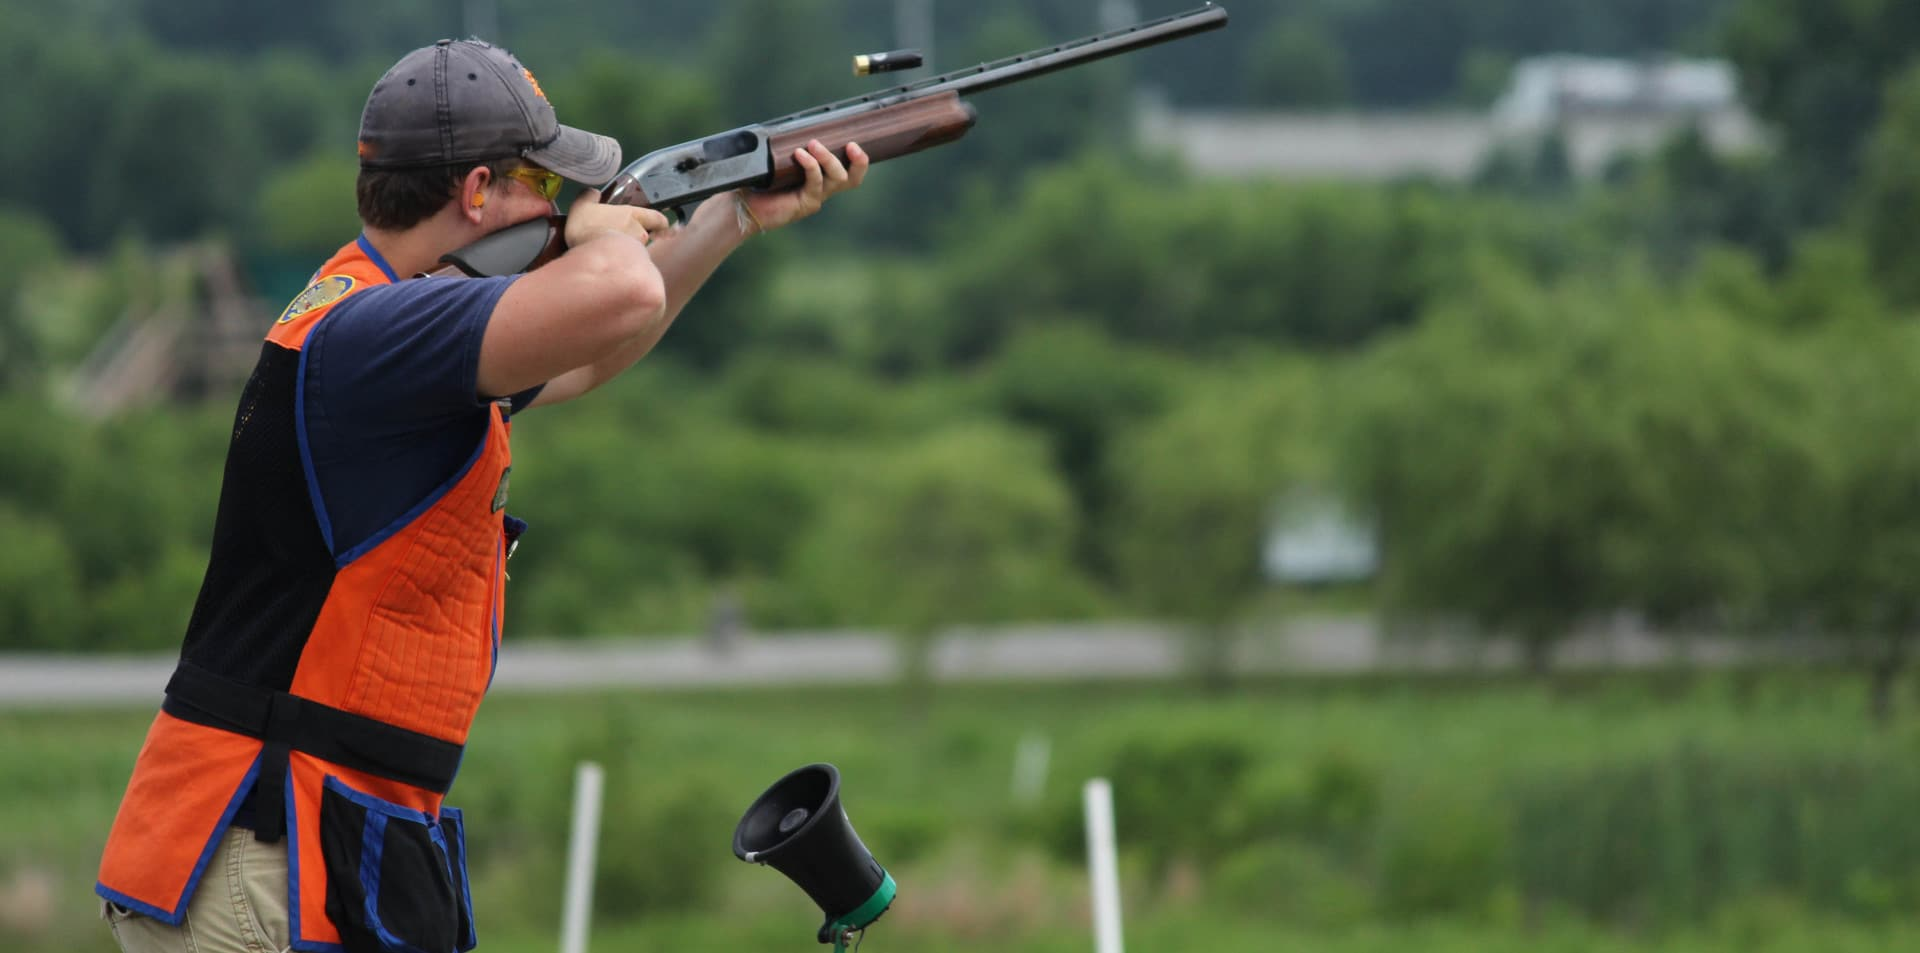 Clay Pigeon Shooting Insurance Image